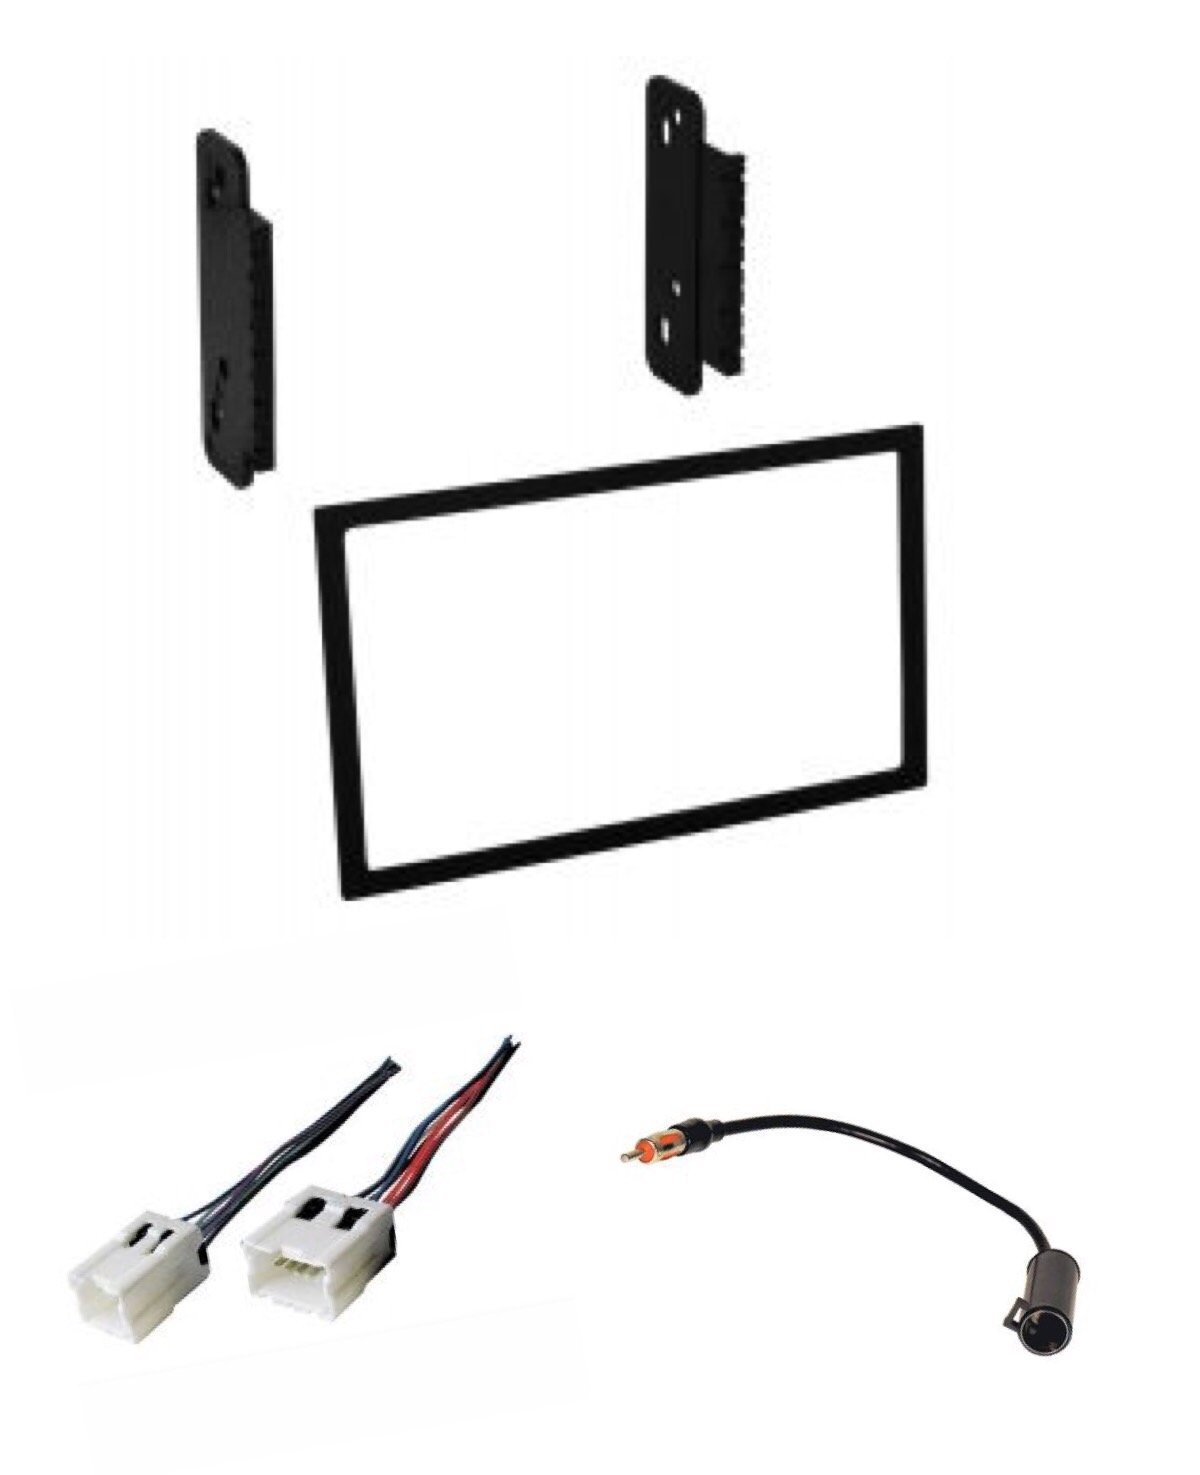 Buy Stereo Dash Kit Wire Harness And Antenna Adapter For Wiring Nissan Frontier Installing A New Double Din